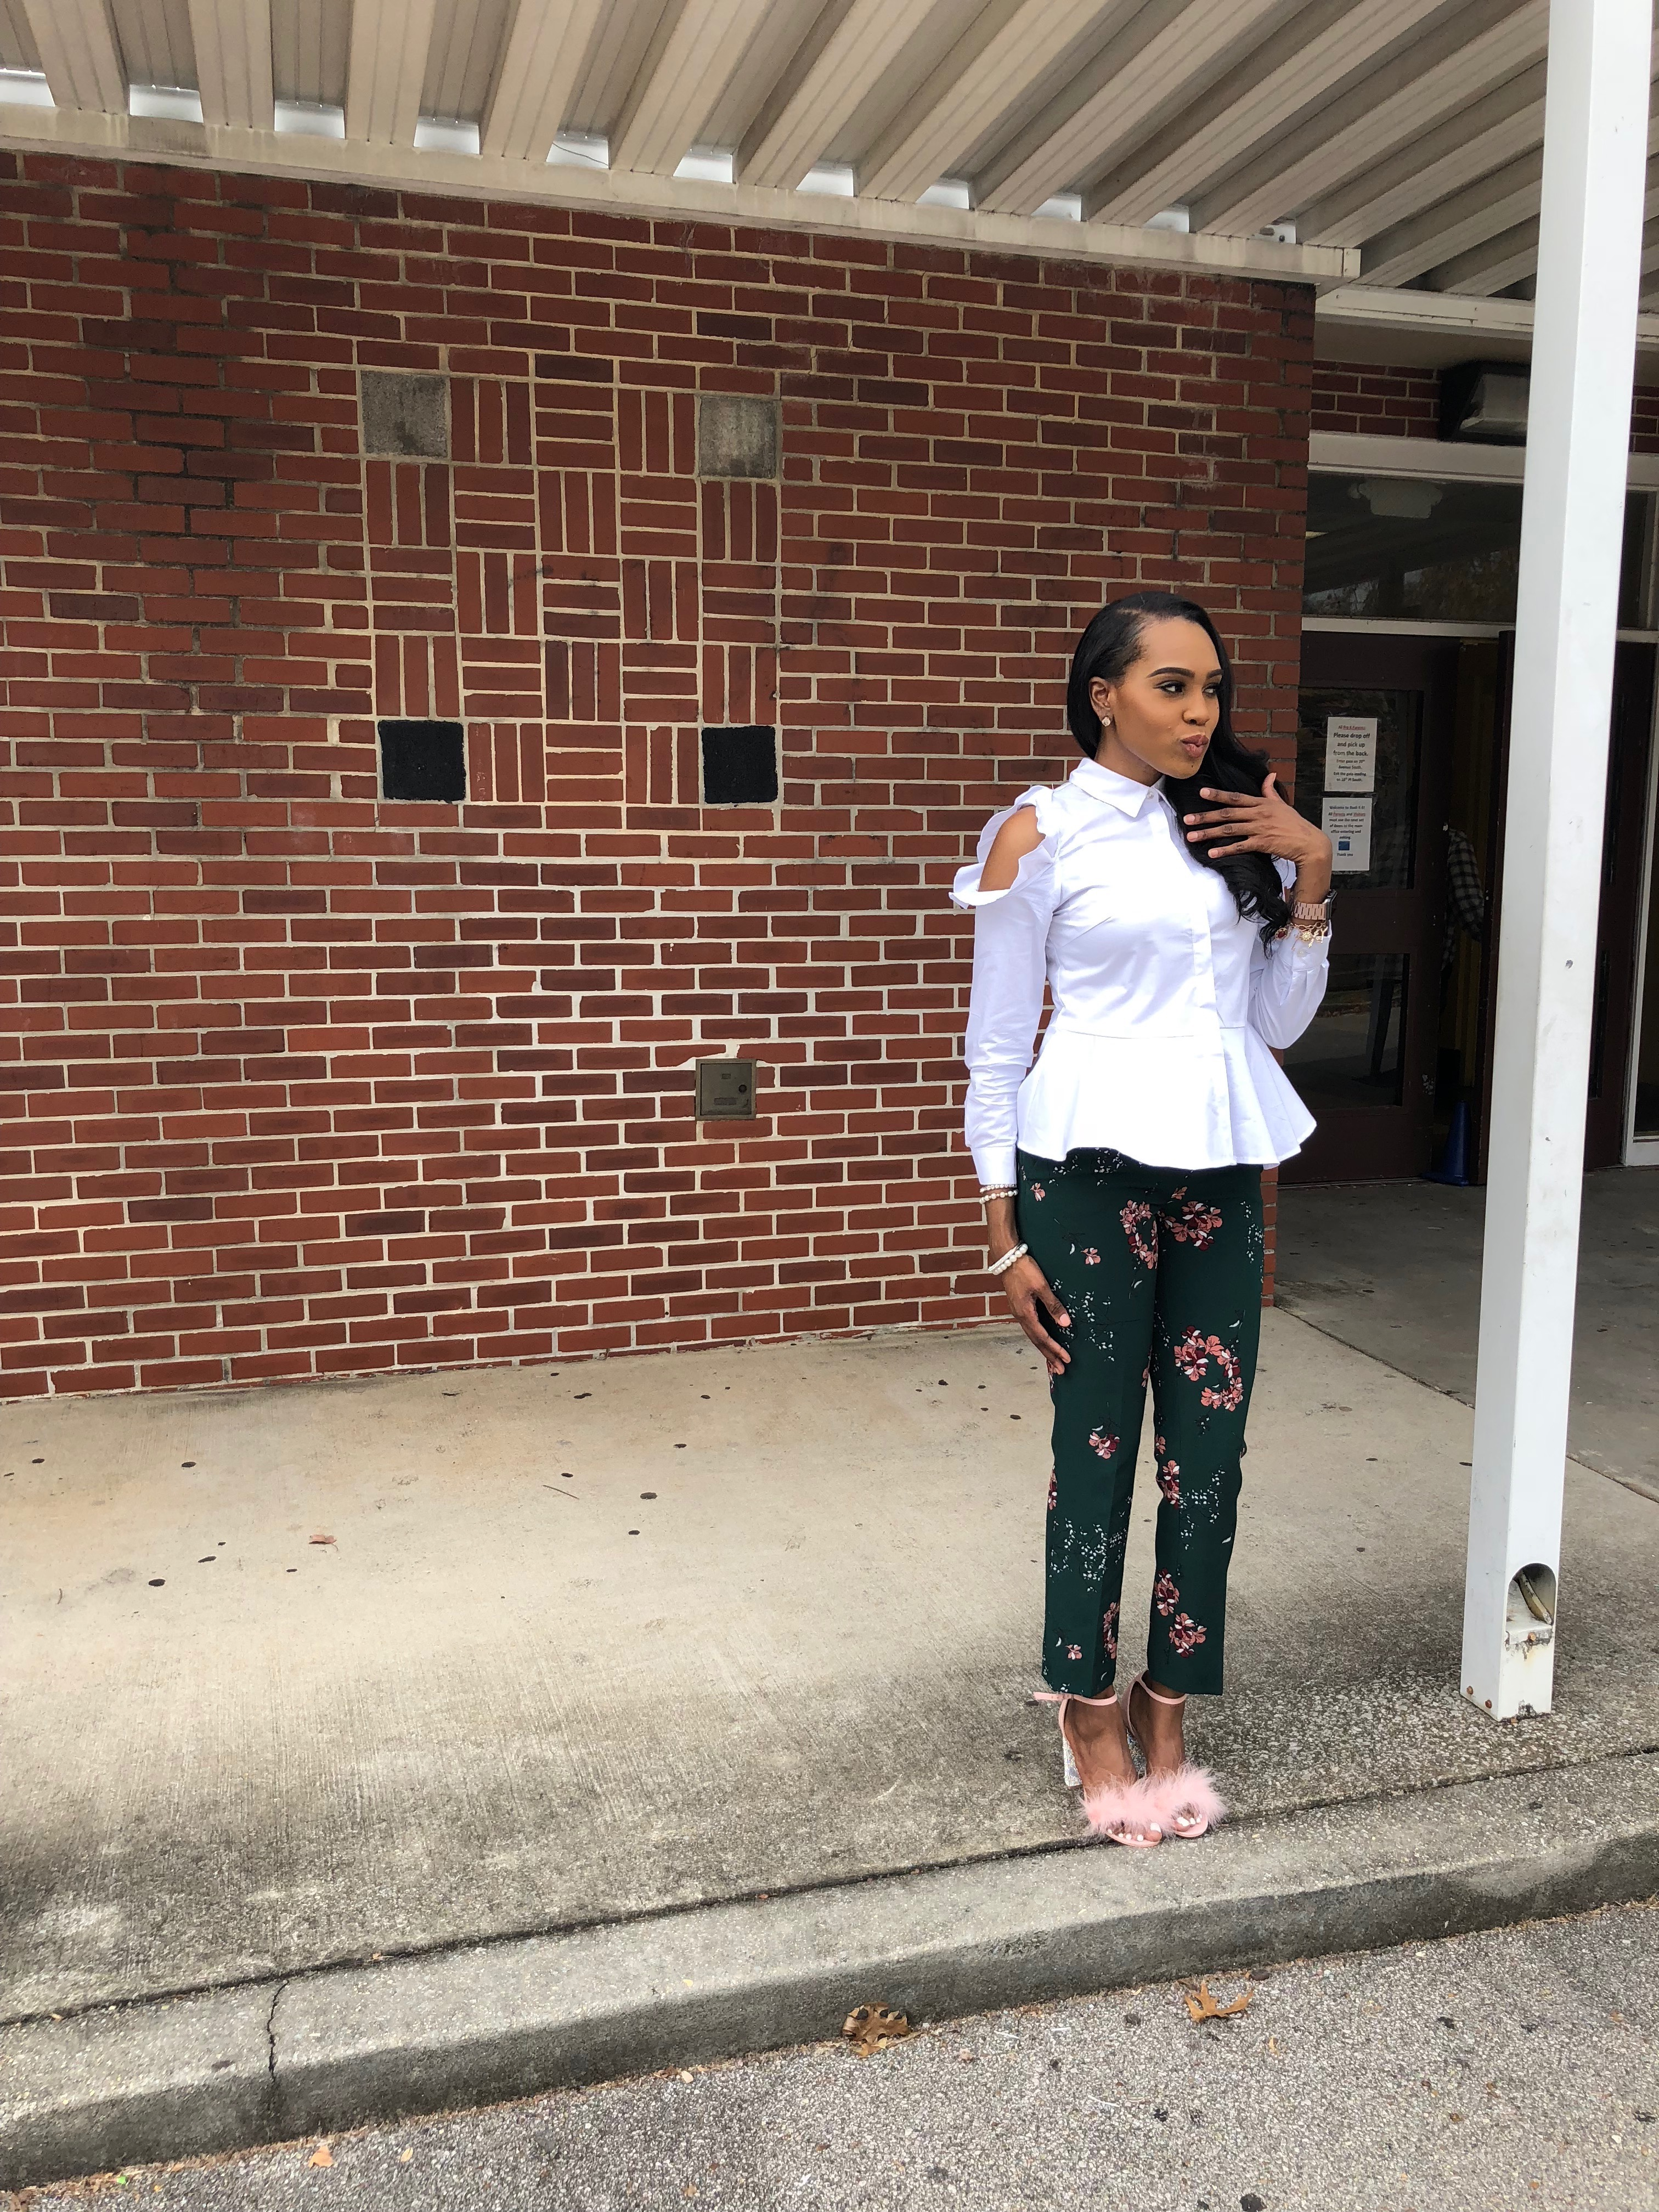 Style-files-Green-floral-printed-ankle-length-carolina-belle-montreal-pants-white-cold-shoulder-ruffle-peplum-blouse-pink-faux-fur-glitter-block-heel-missguided-ankle-strap-sandals-oohlalablog-